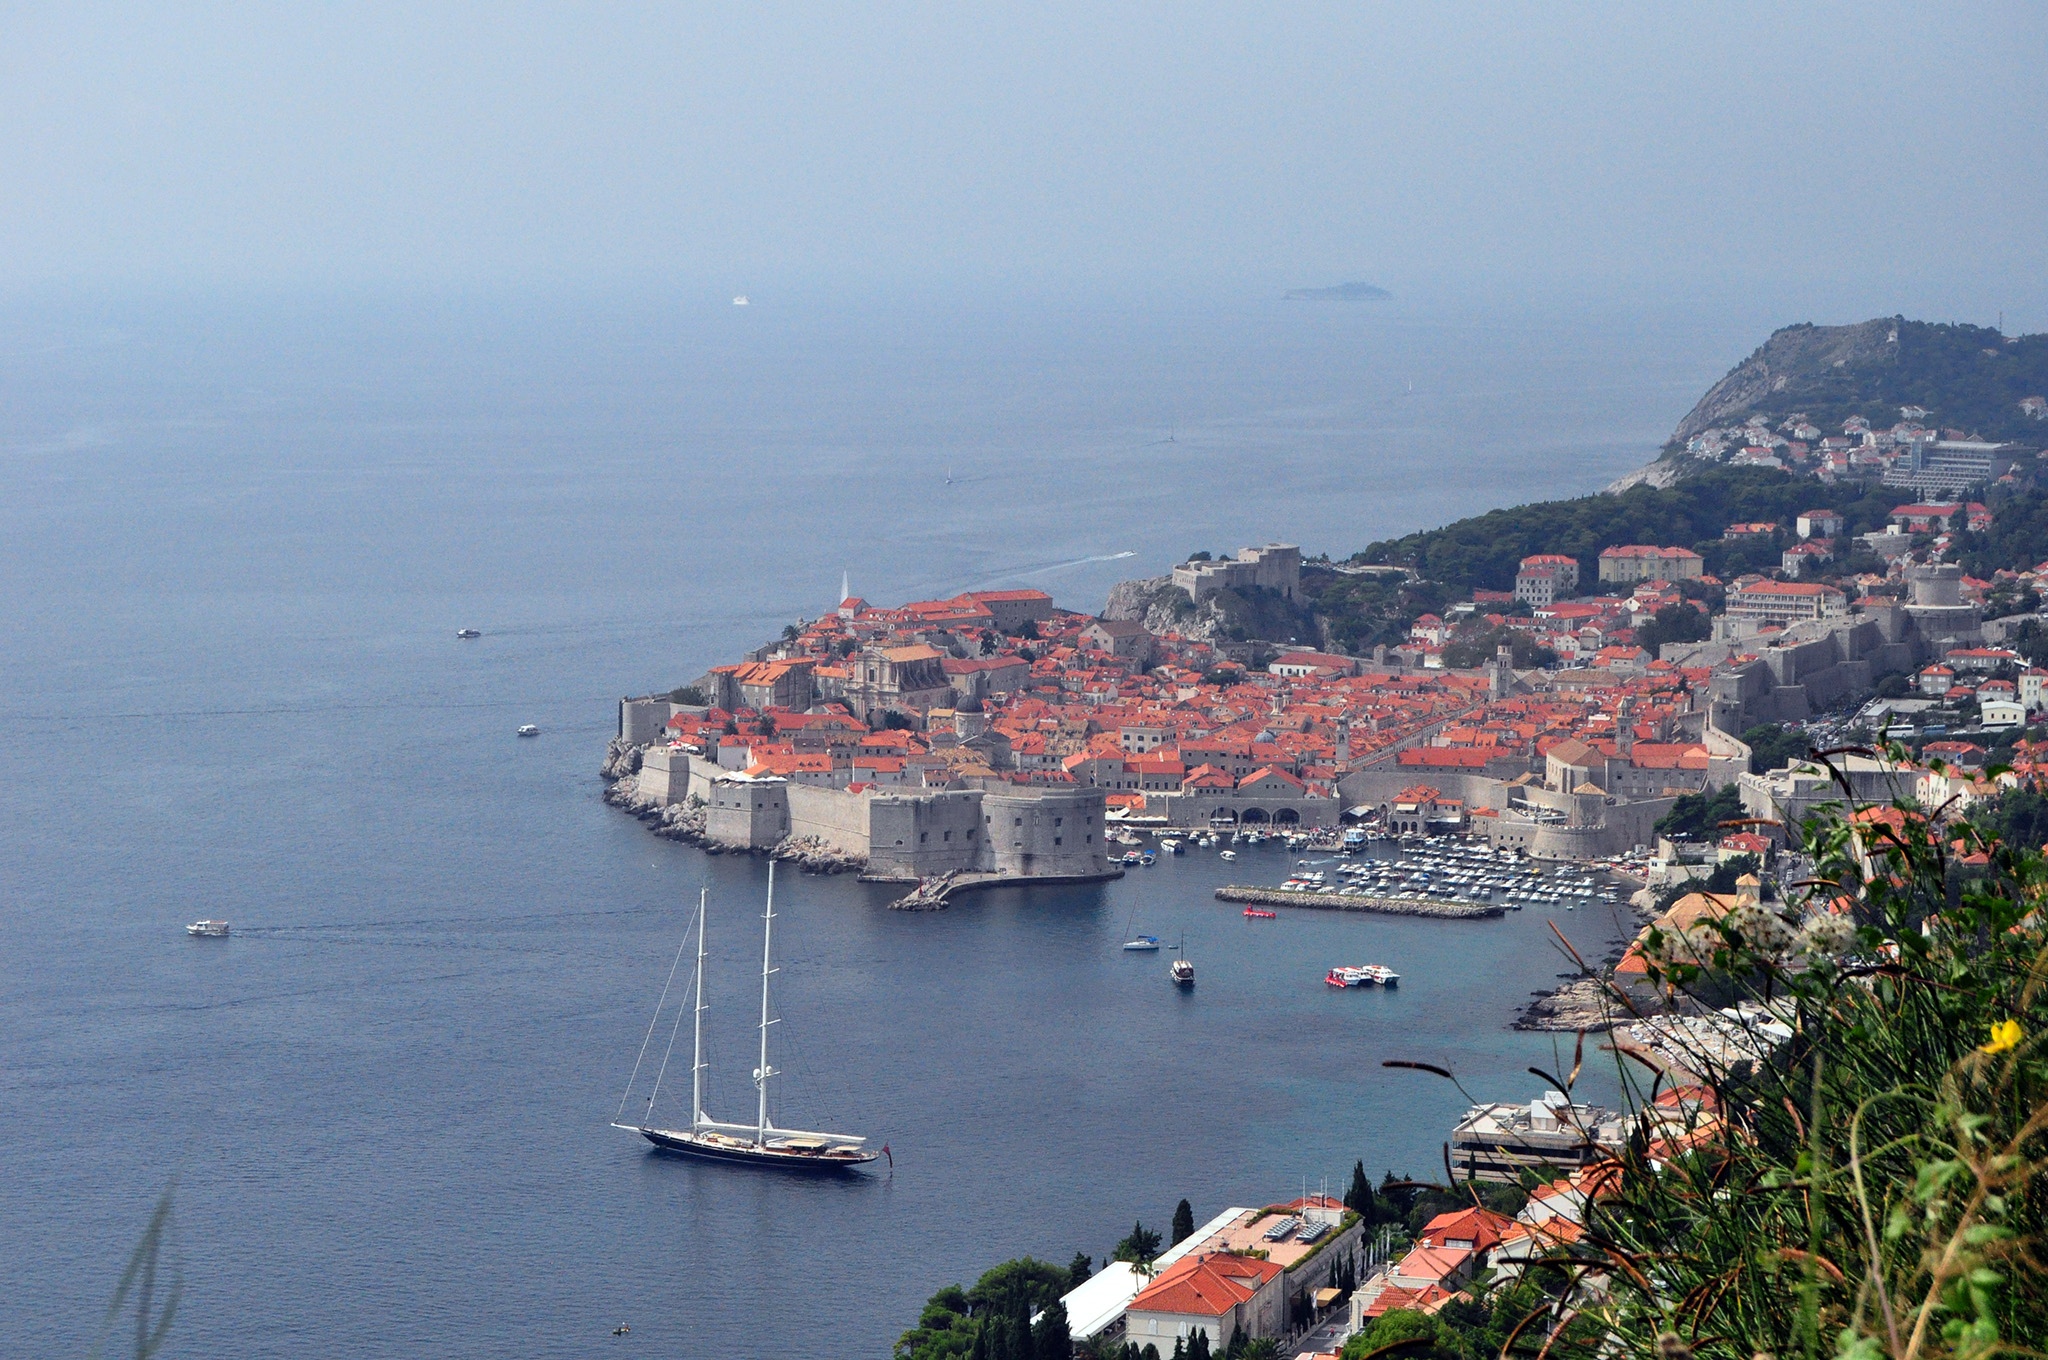 Day 17: Dubrovnik to Macedonia via Montenegro and Albania